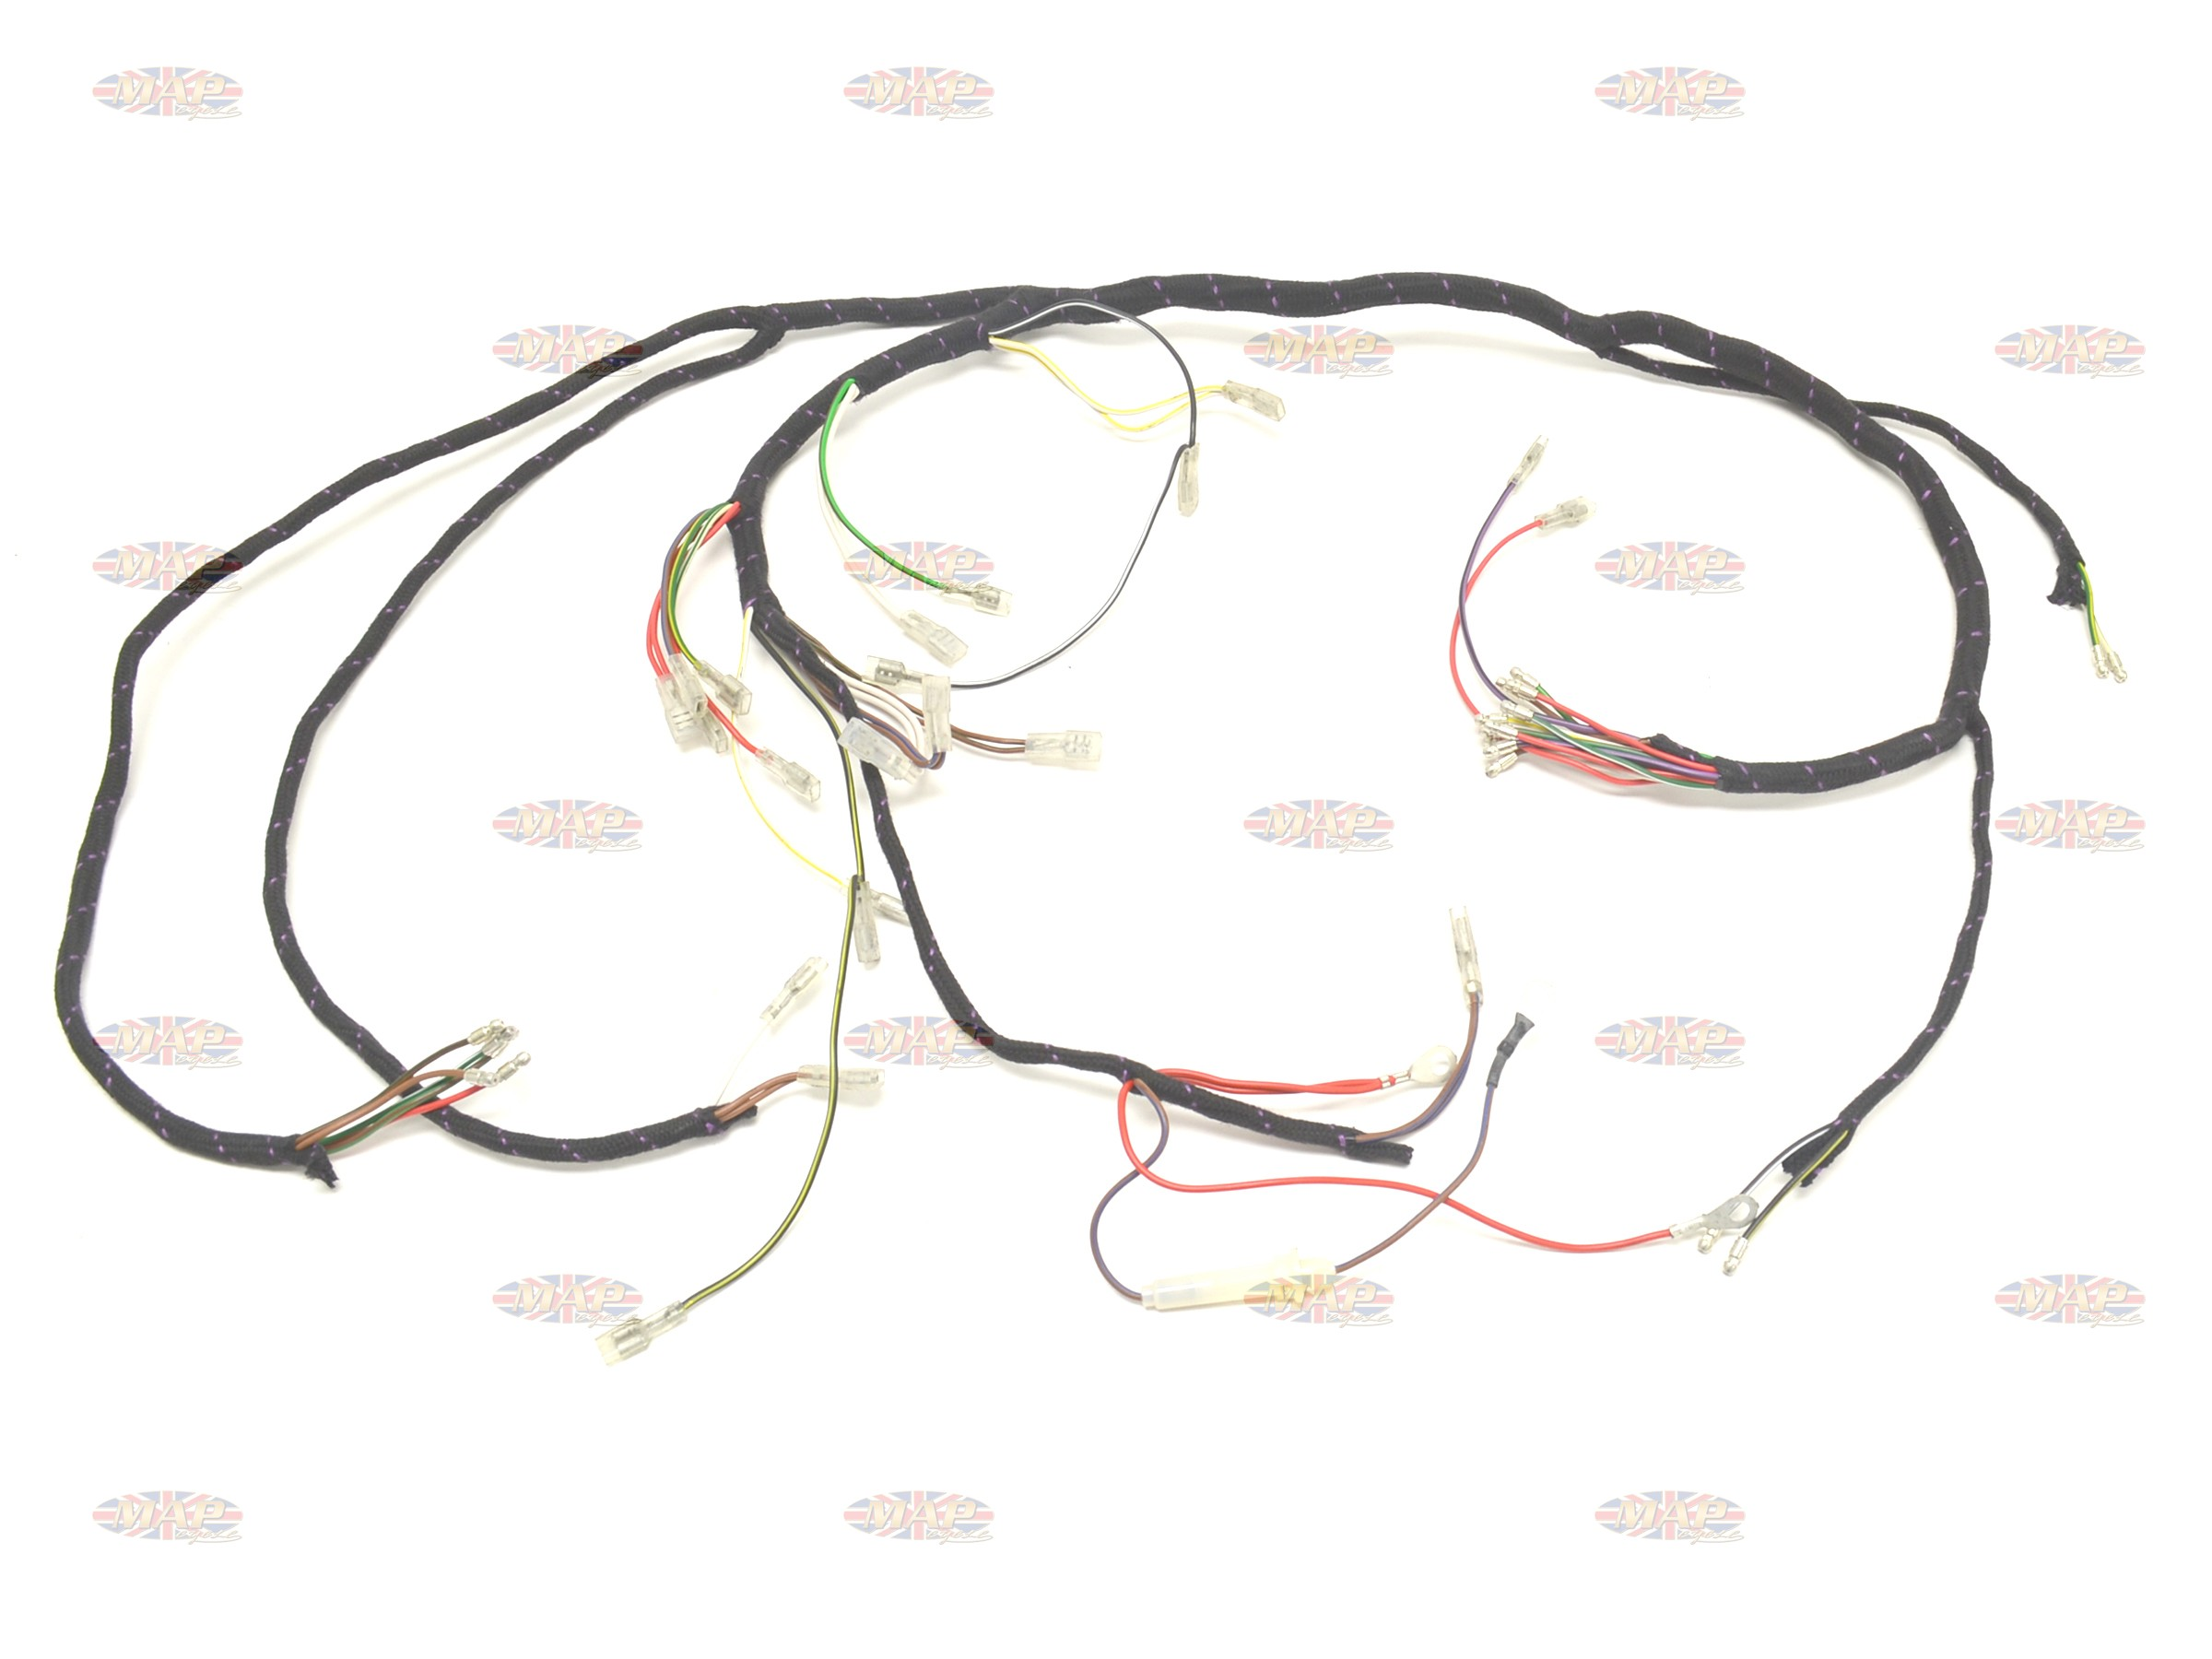 Triumph 1971-73 T120 Bonneville TR6 Tiger UK-Made Main Wiring HarnessMAP Cycle